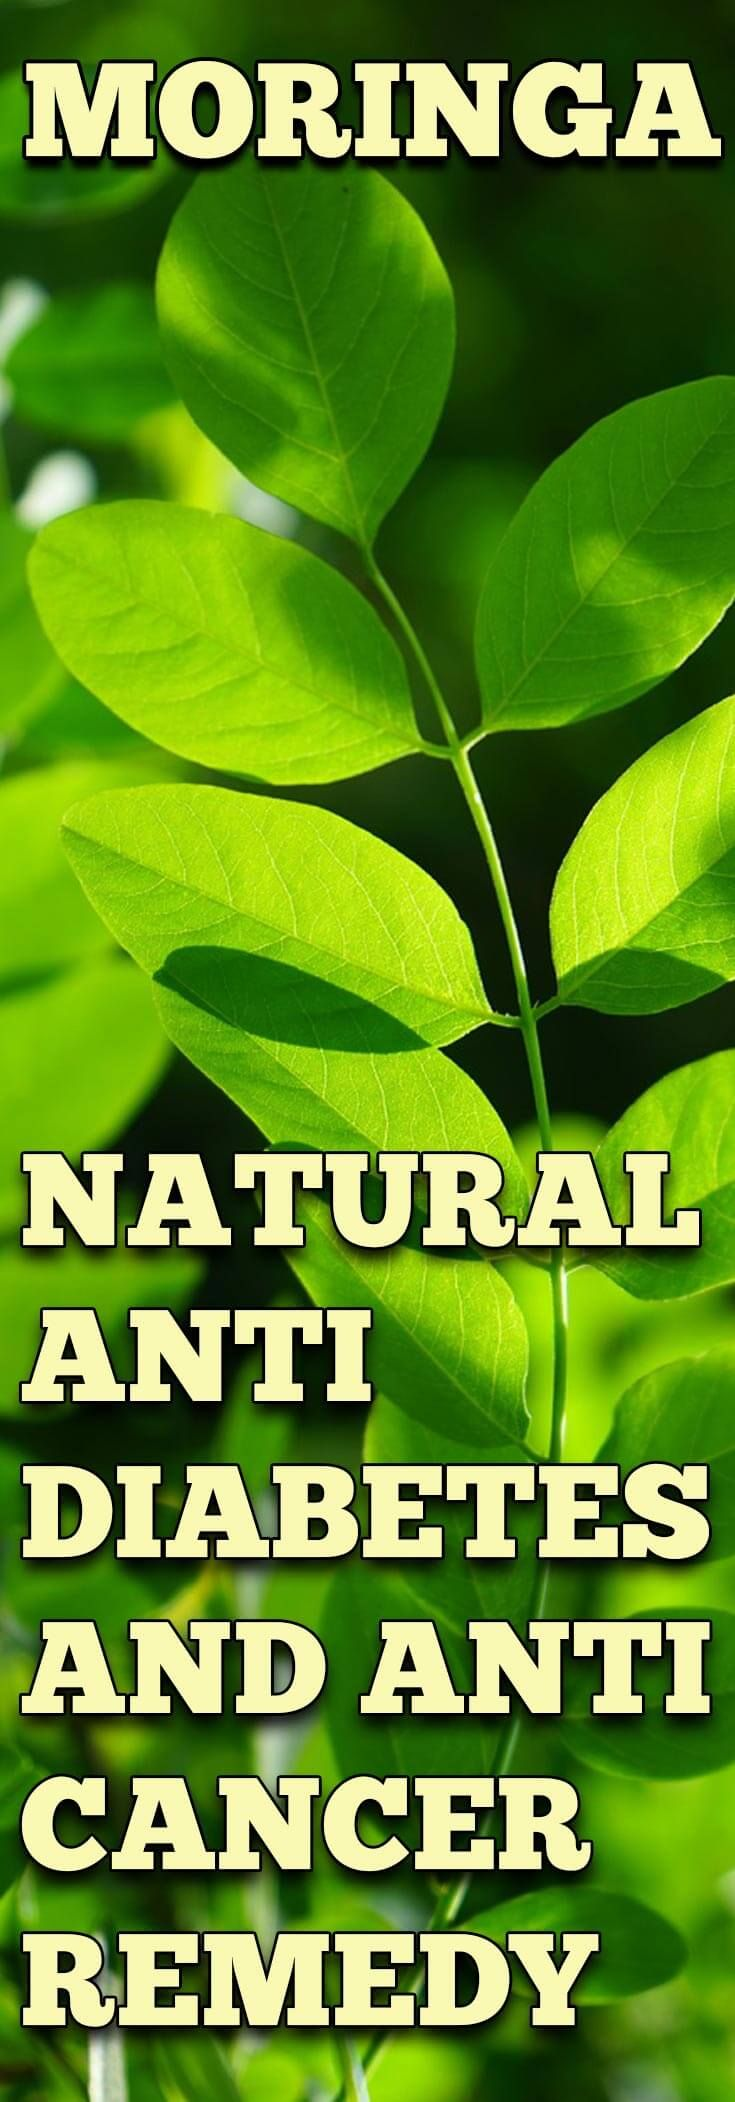 This nature given medicine is called Moringa Oleifera and is a native plant for South Asia. It has been part of their homemade medicine practice for a long time